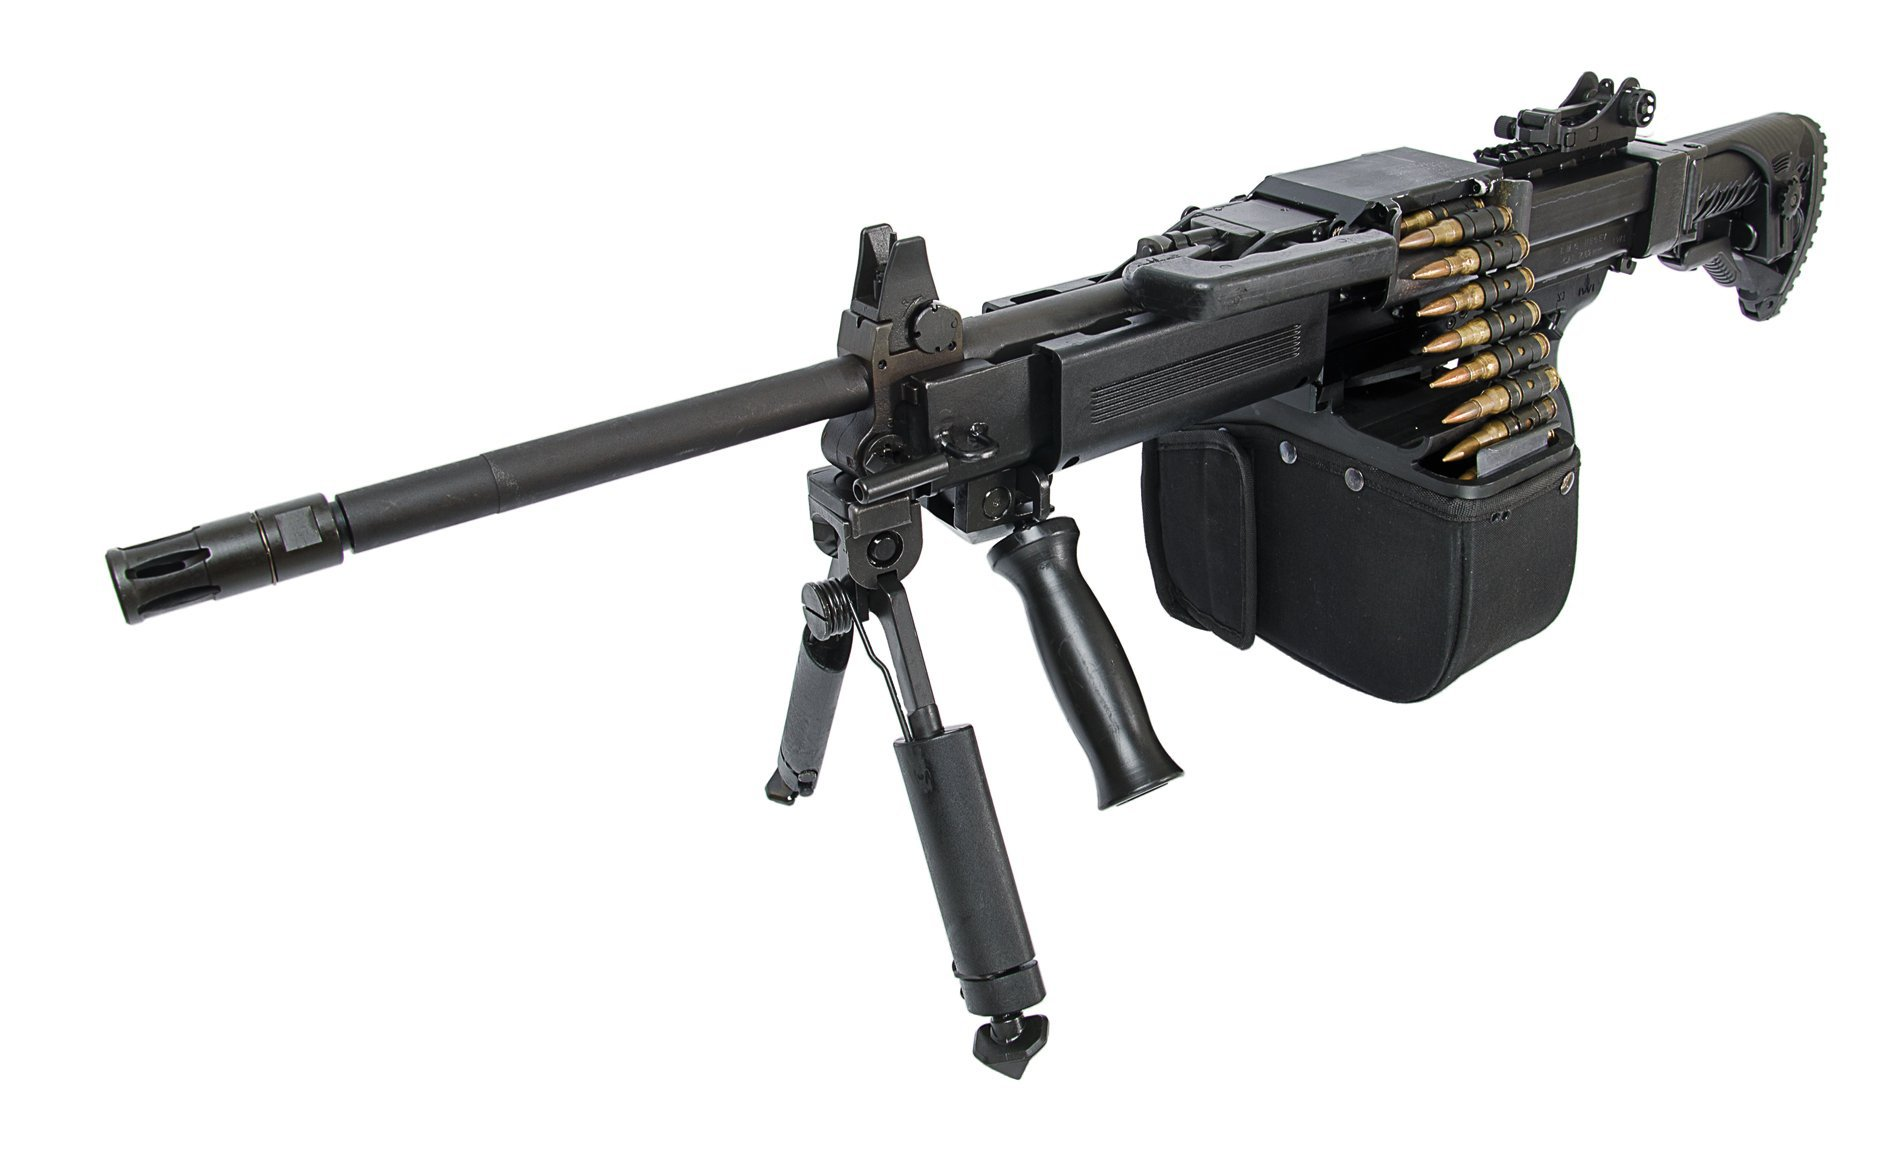 "Israel Weapon Industries IWI NEGEV NG7 LMG/LMG SF Belt-Fed 7.62mm NATO ""Light Machine Gun"": Lightweight and Highly-Mobile Select-Fire 7.62x51mm Medium Machine Gun/General Purpose Machine Gun (MMG/GPMG) for Military Infantry Special Operations Forces (SOF) Missions in Urban Warfare Environments (Video!)"